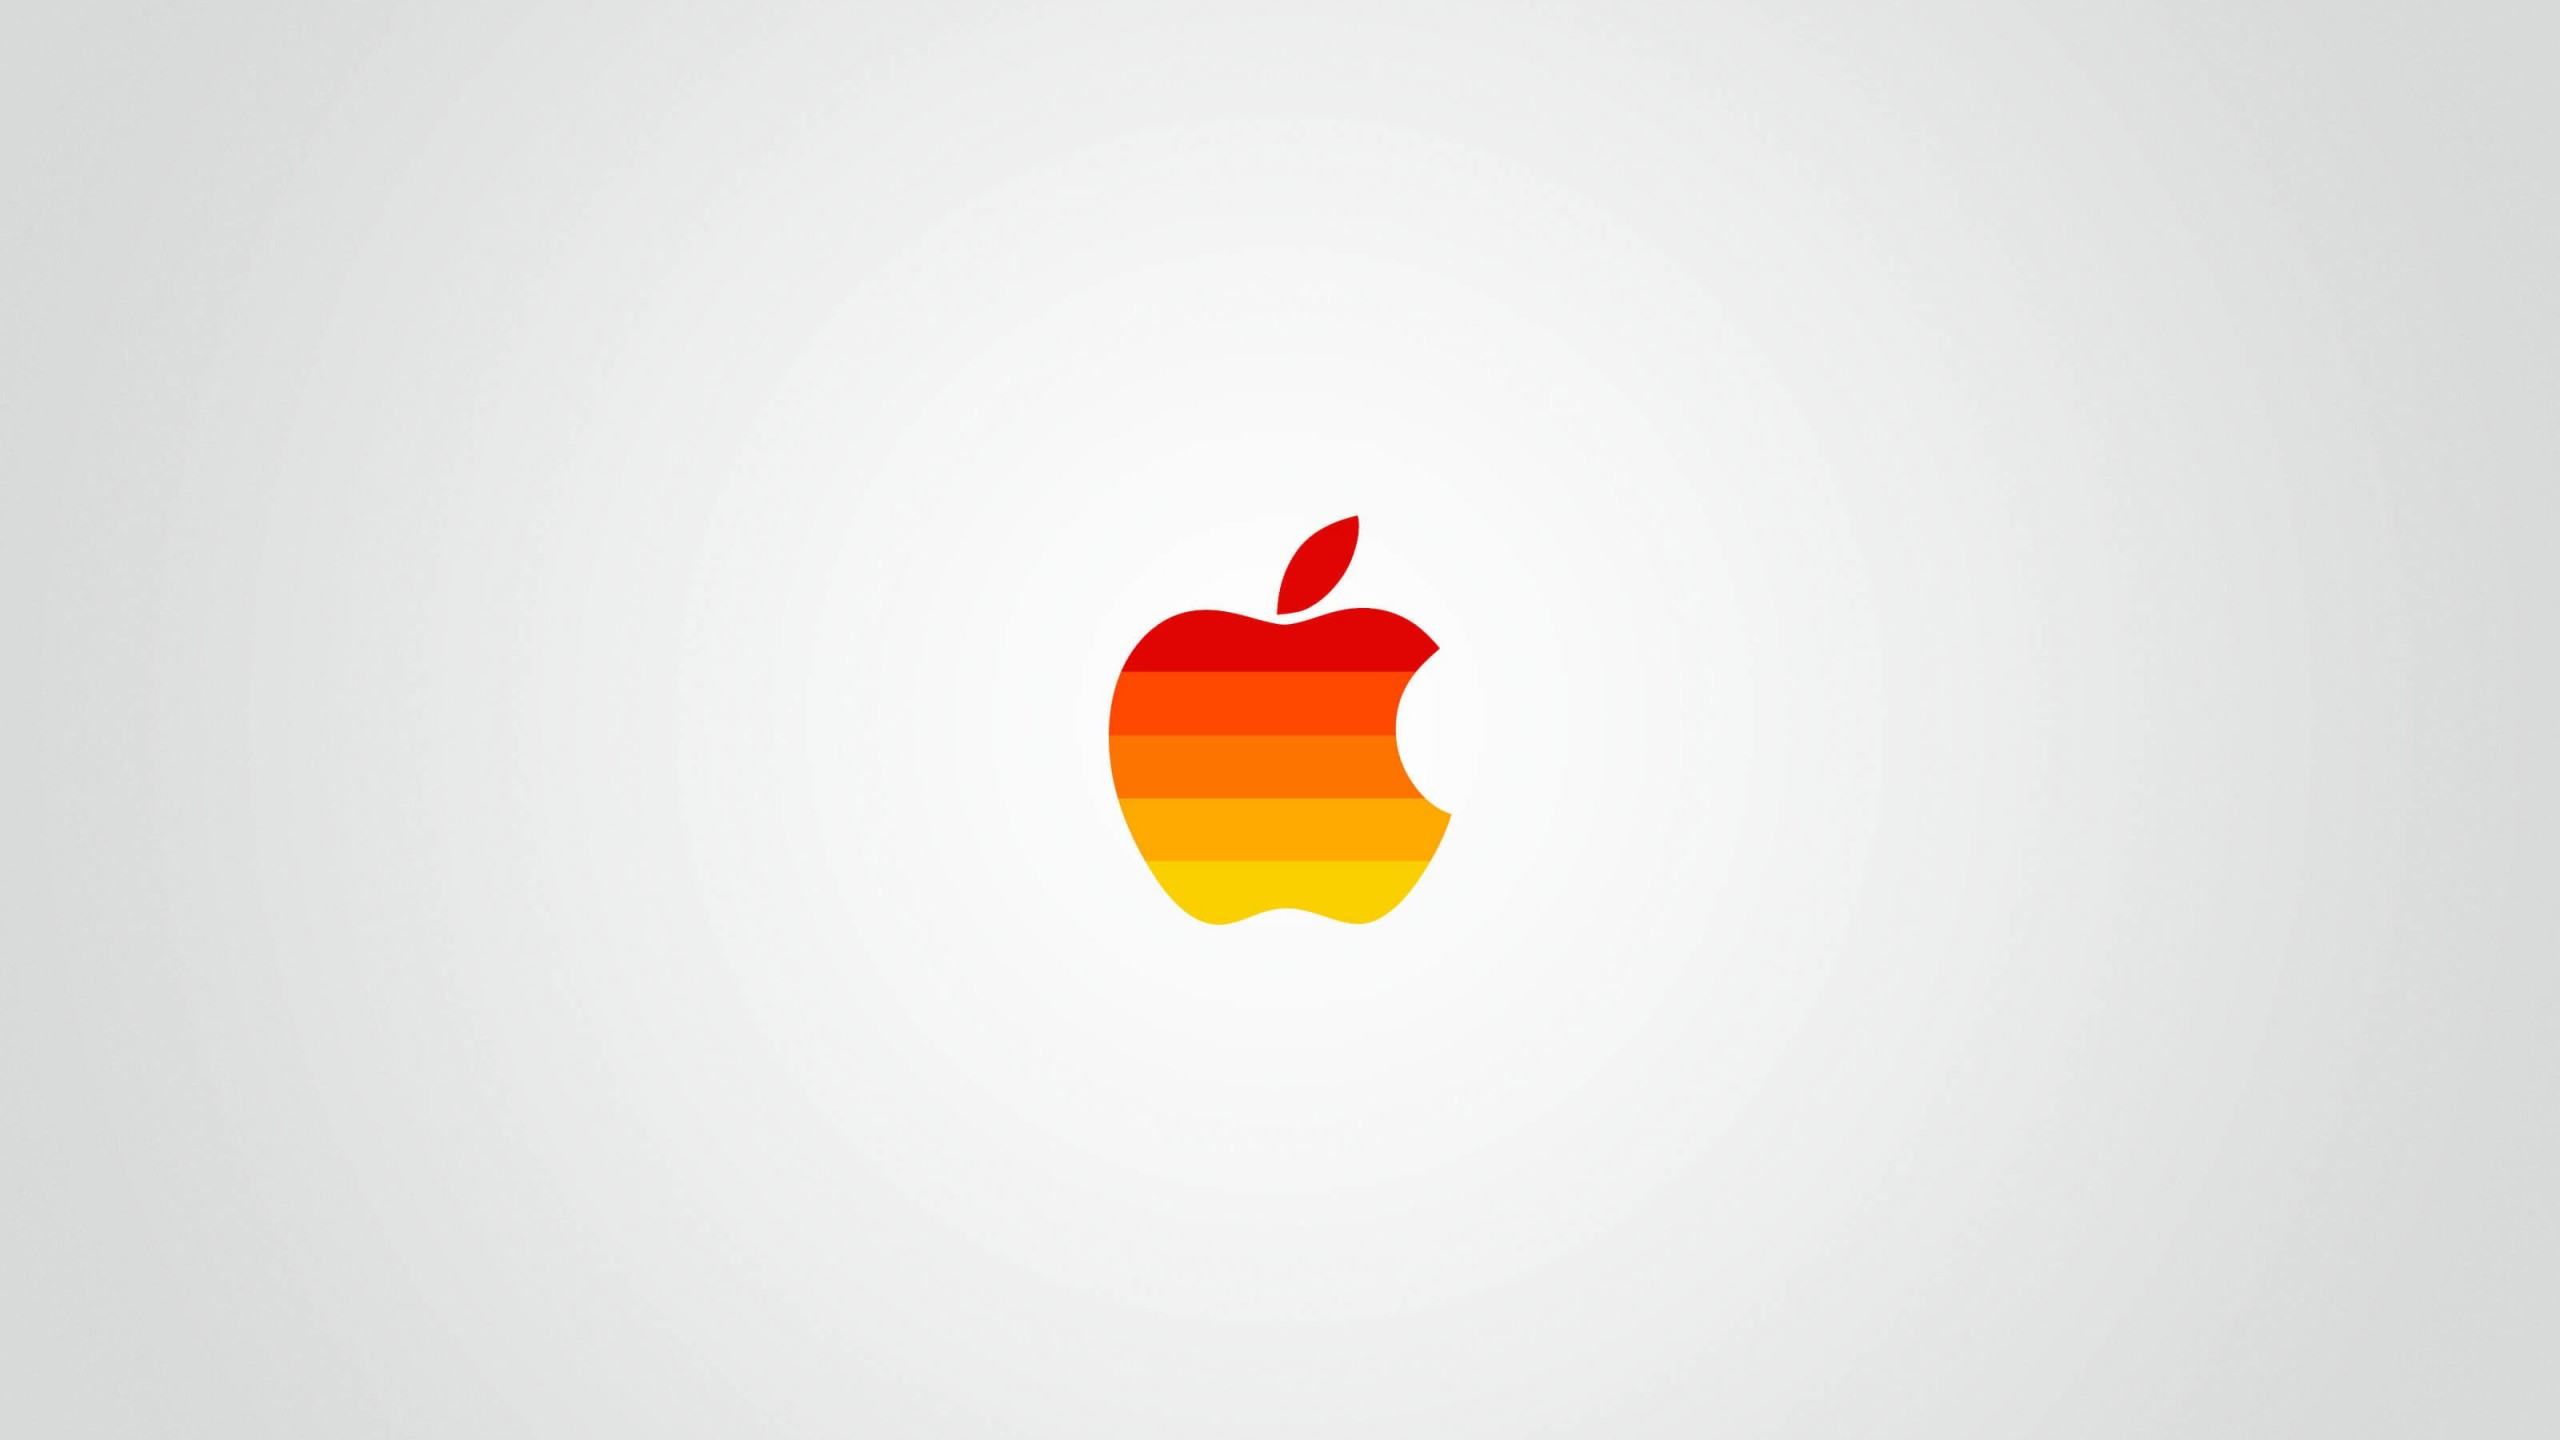 Clear Apple Wallpaper for Social Media YouTube Channel Art